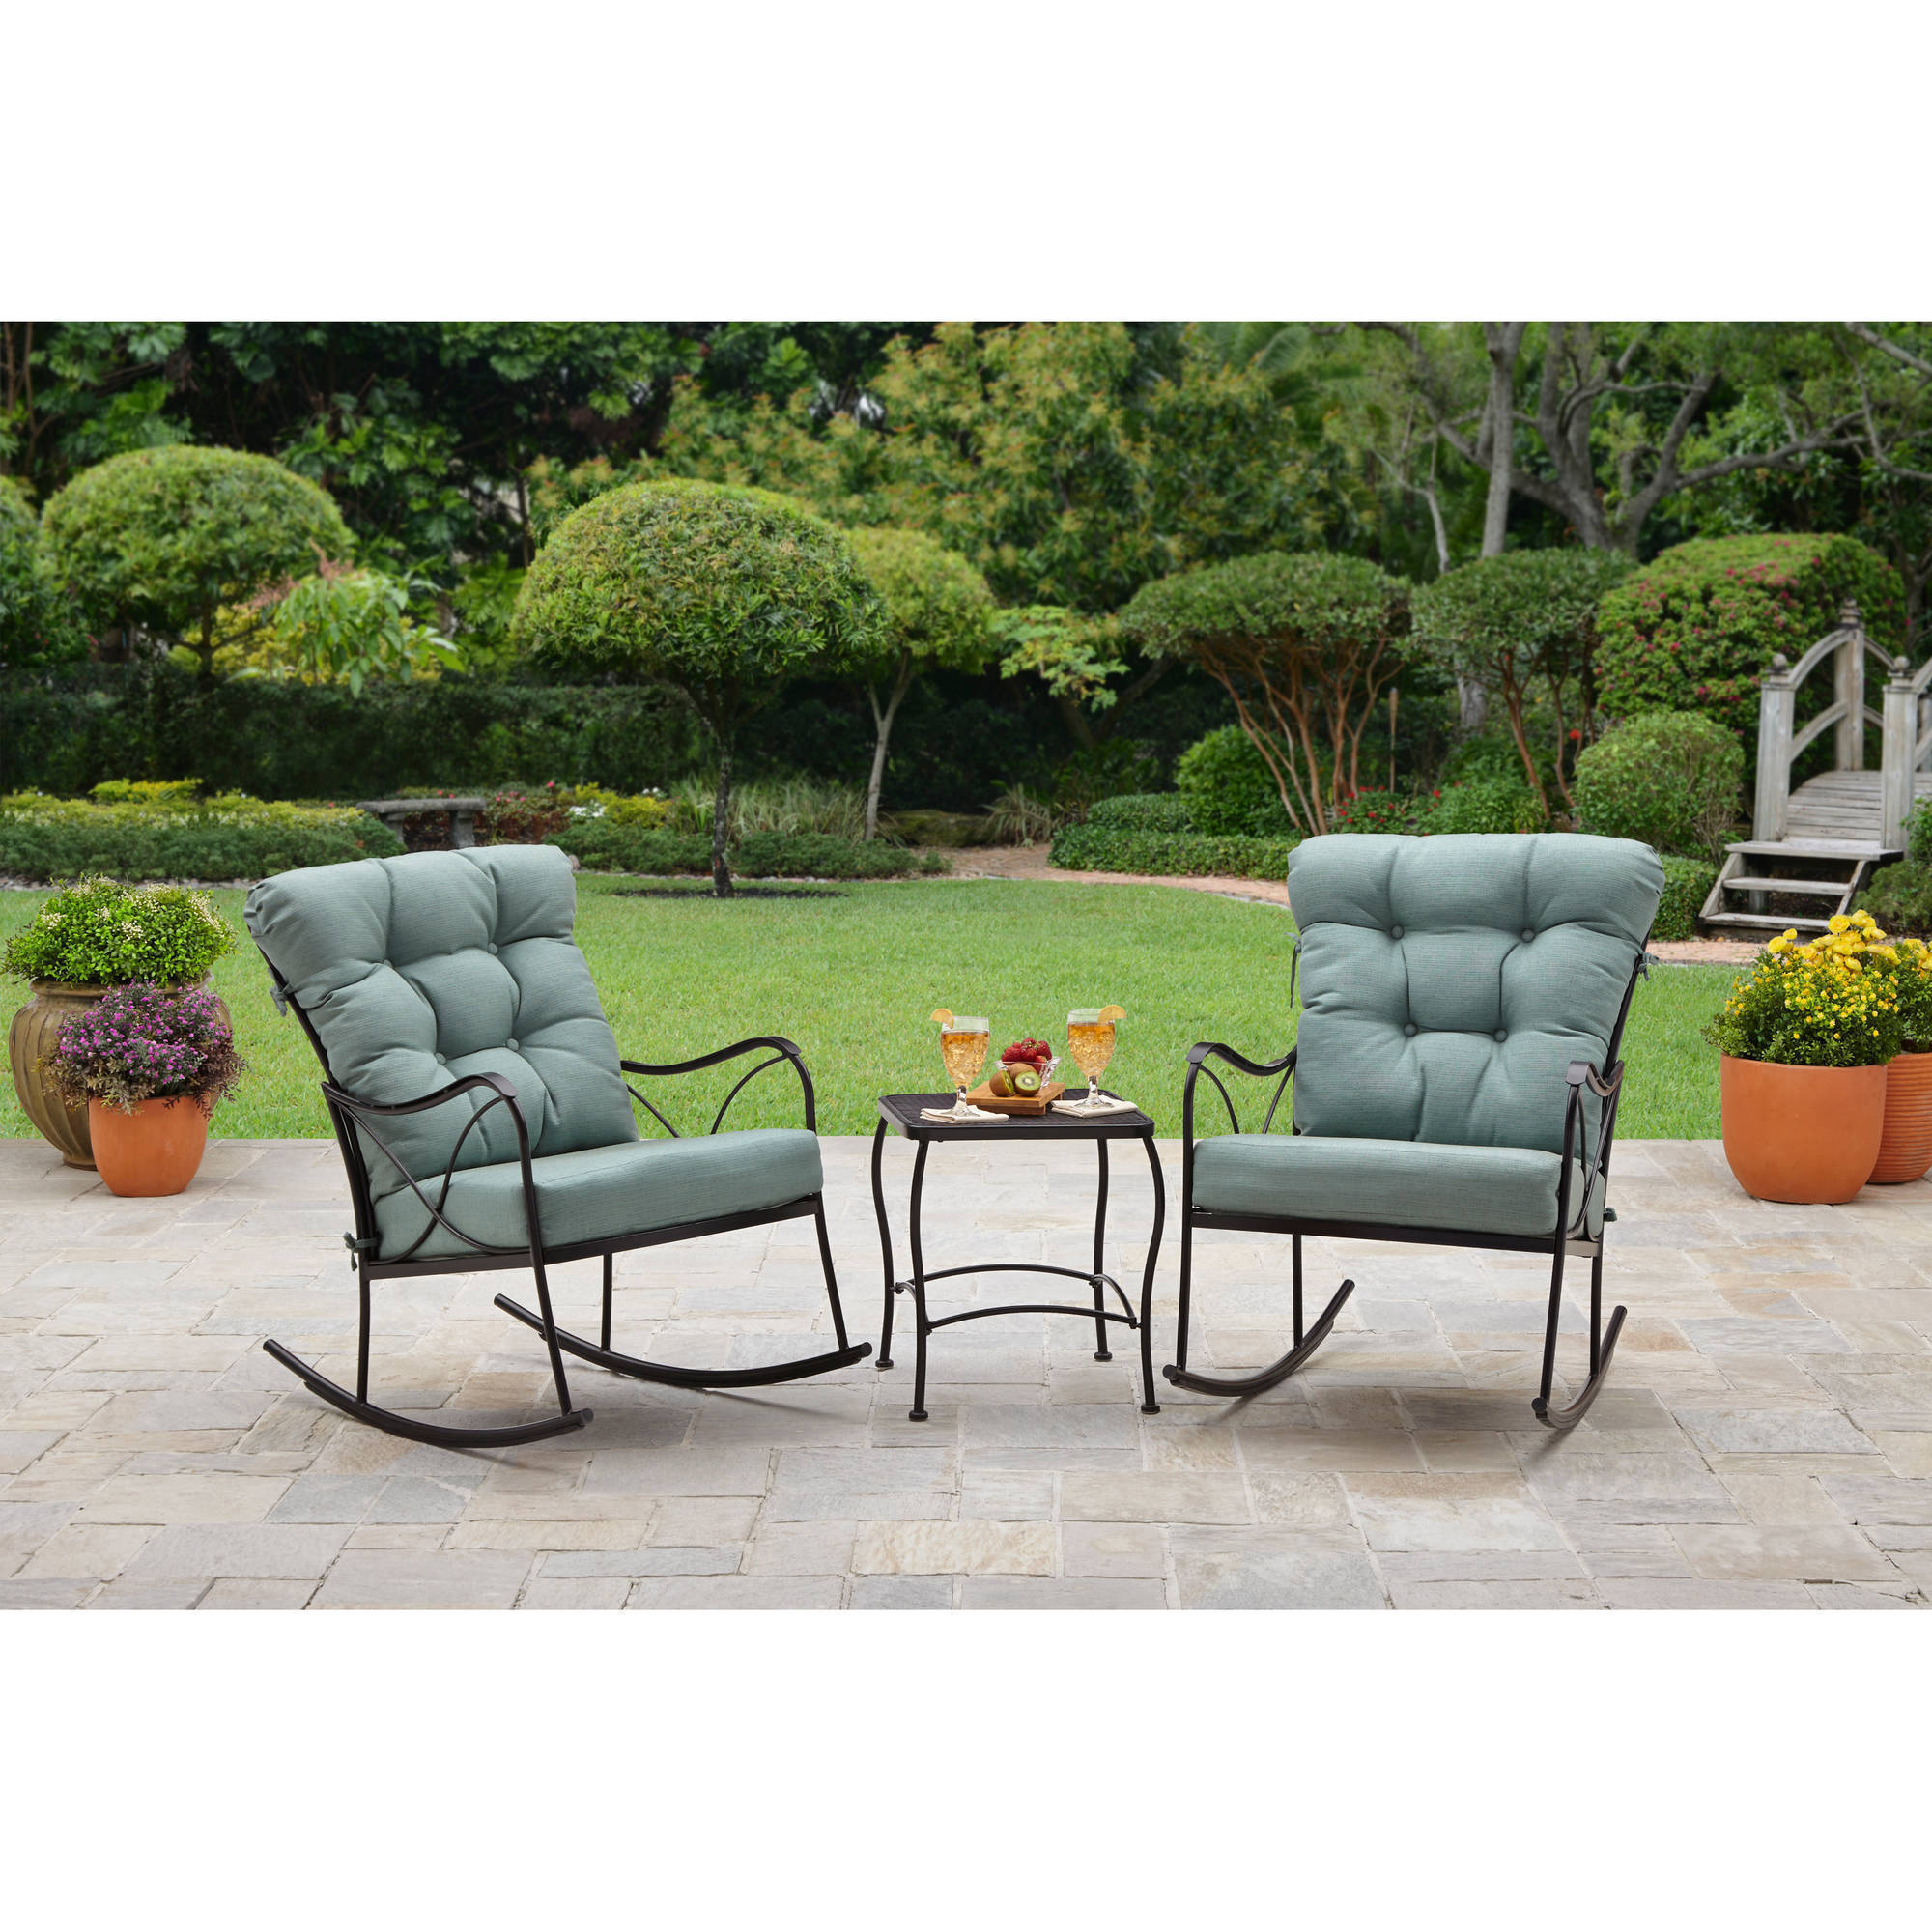 Better Homes And Gardens Seacliff 3 Piece Rocking Chair Bistro Set    Walmart.com